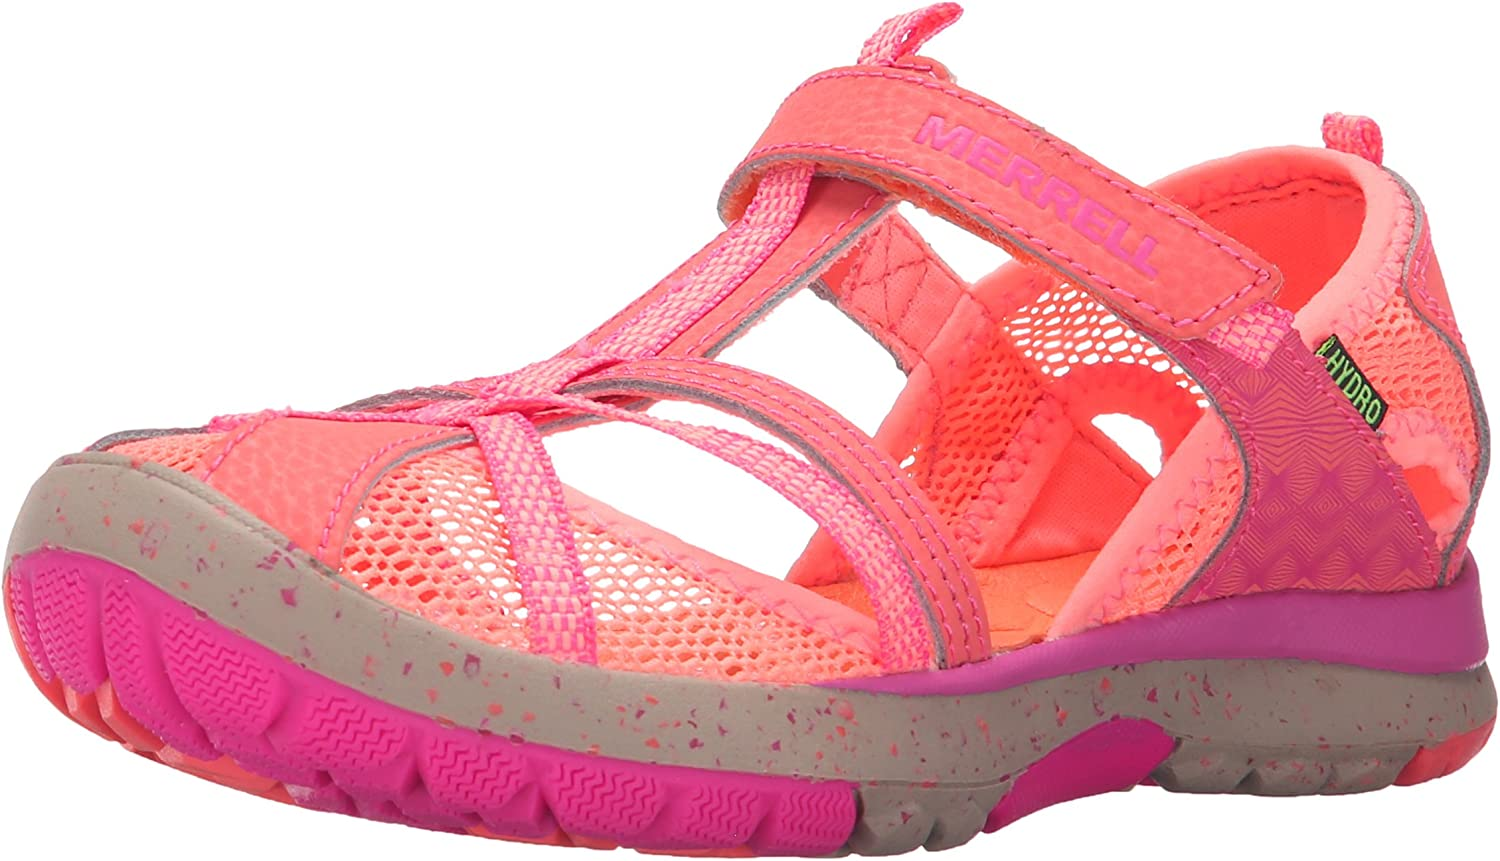 Merrell Hydro Import Monarch High quality Water Sandal Little Kid Toddler Big